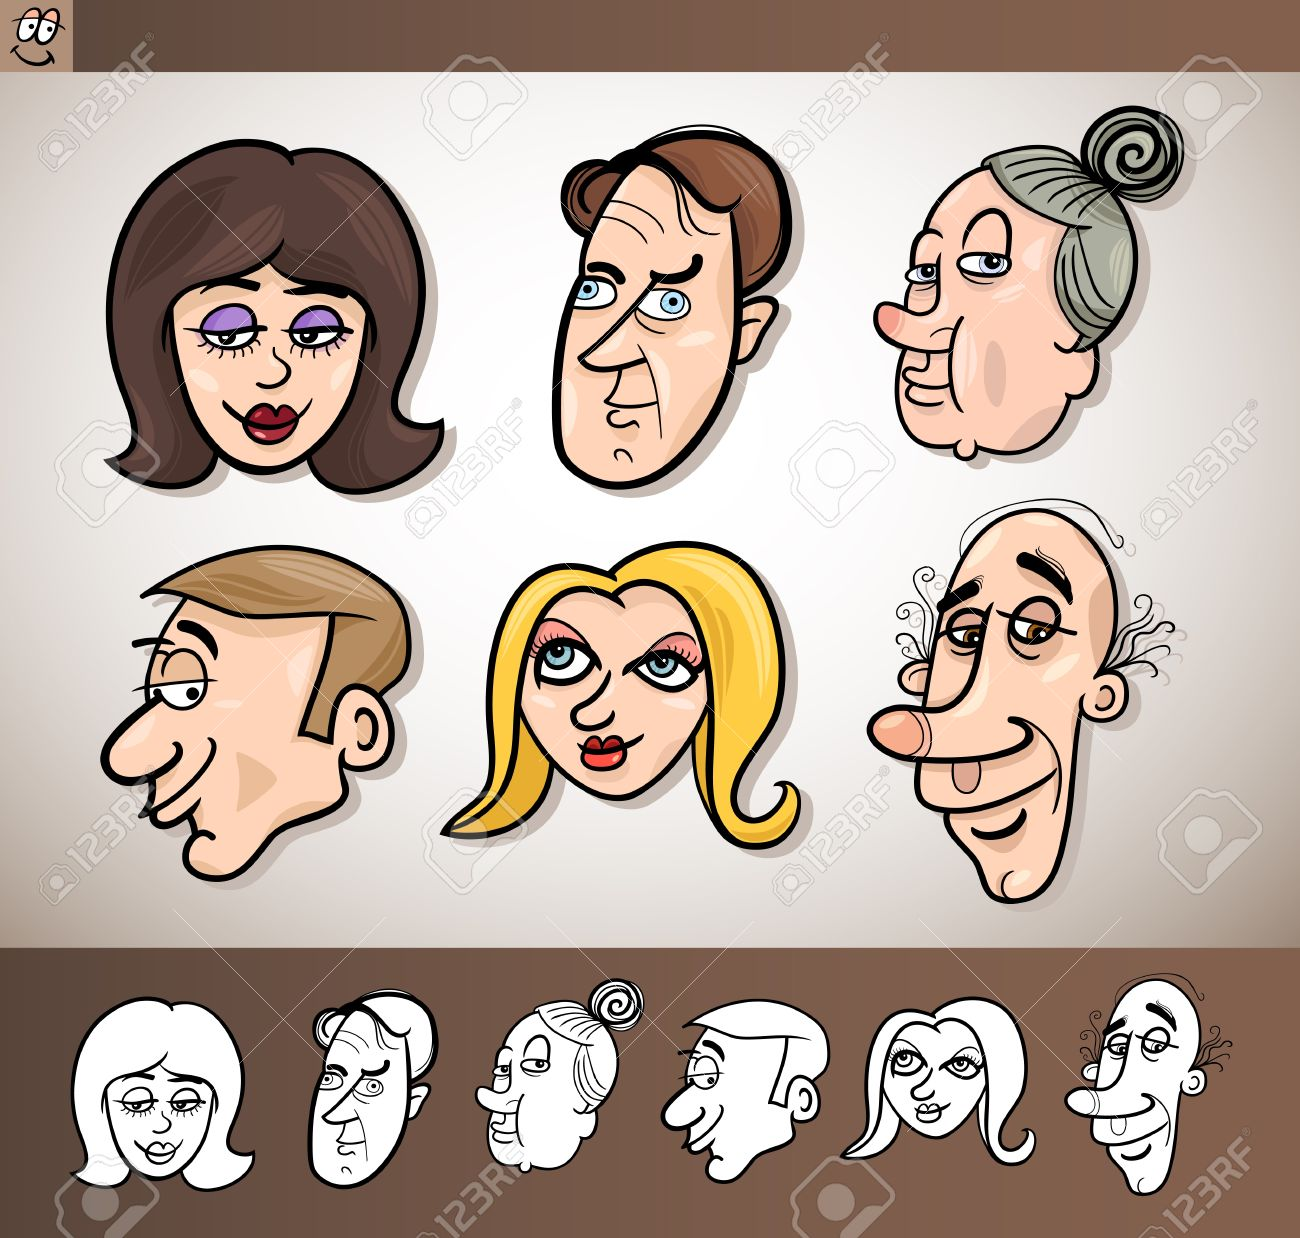 Cartoon Illustration of Funny People Set with Men and Women Heads plus Black and White versions Stock Vector - 17560137